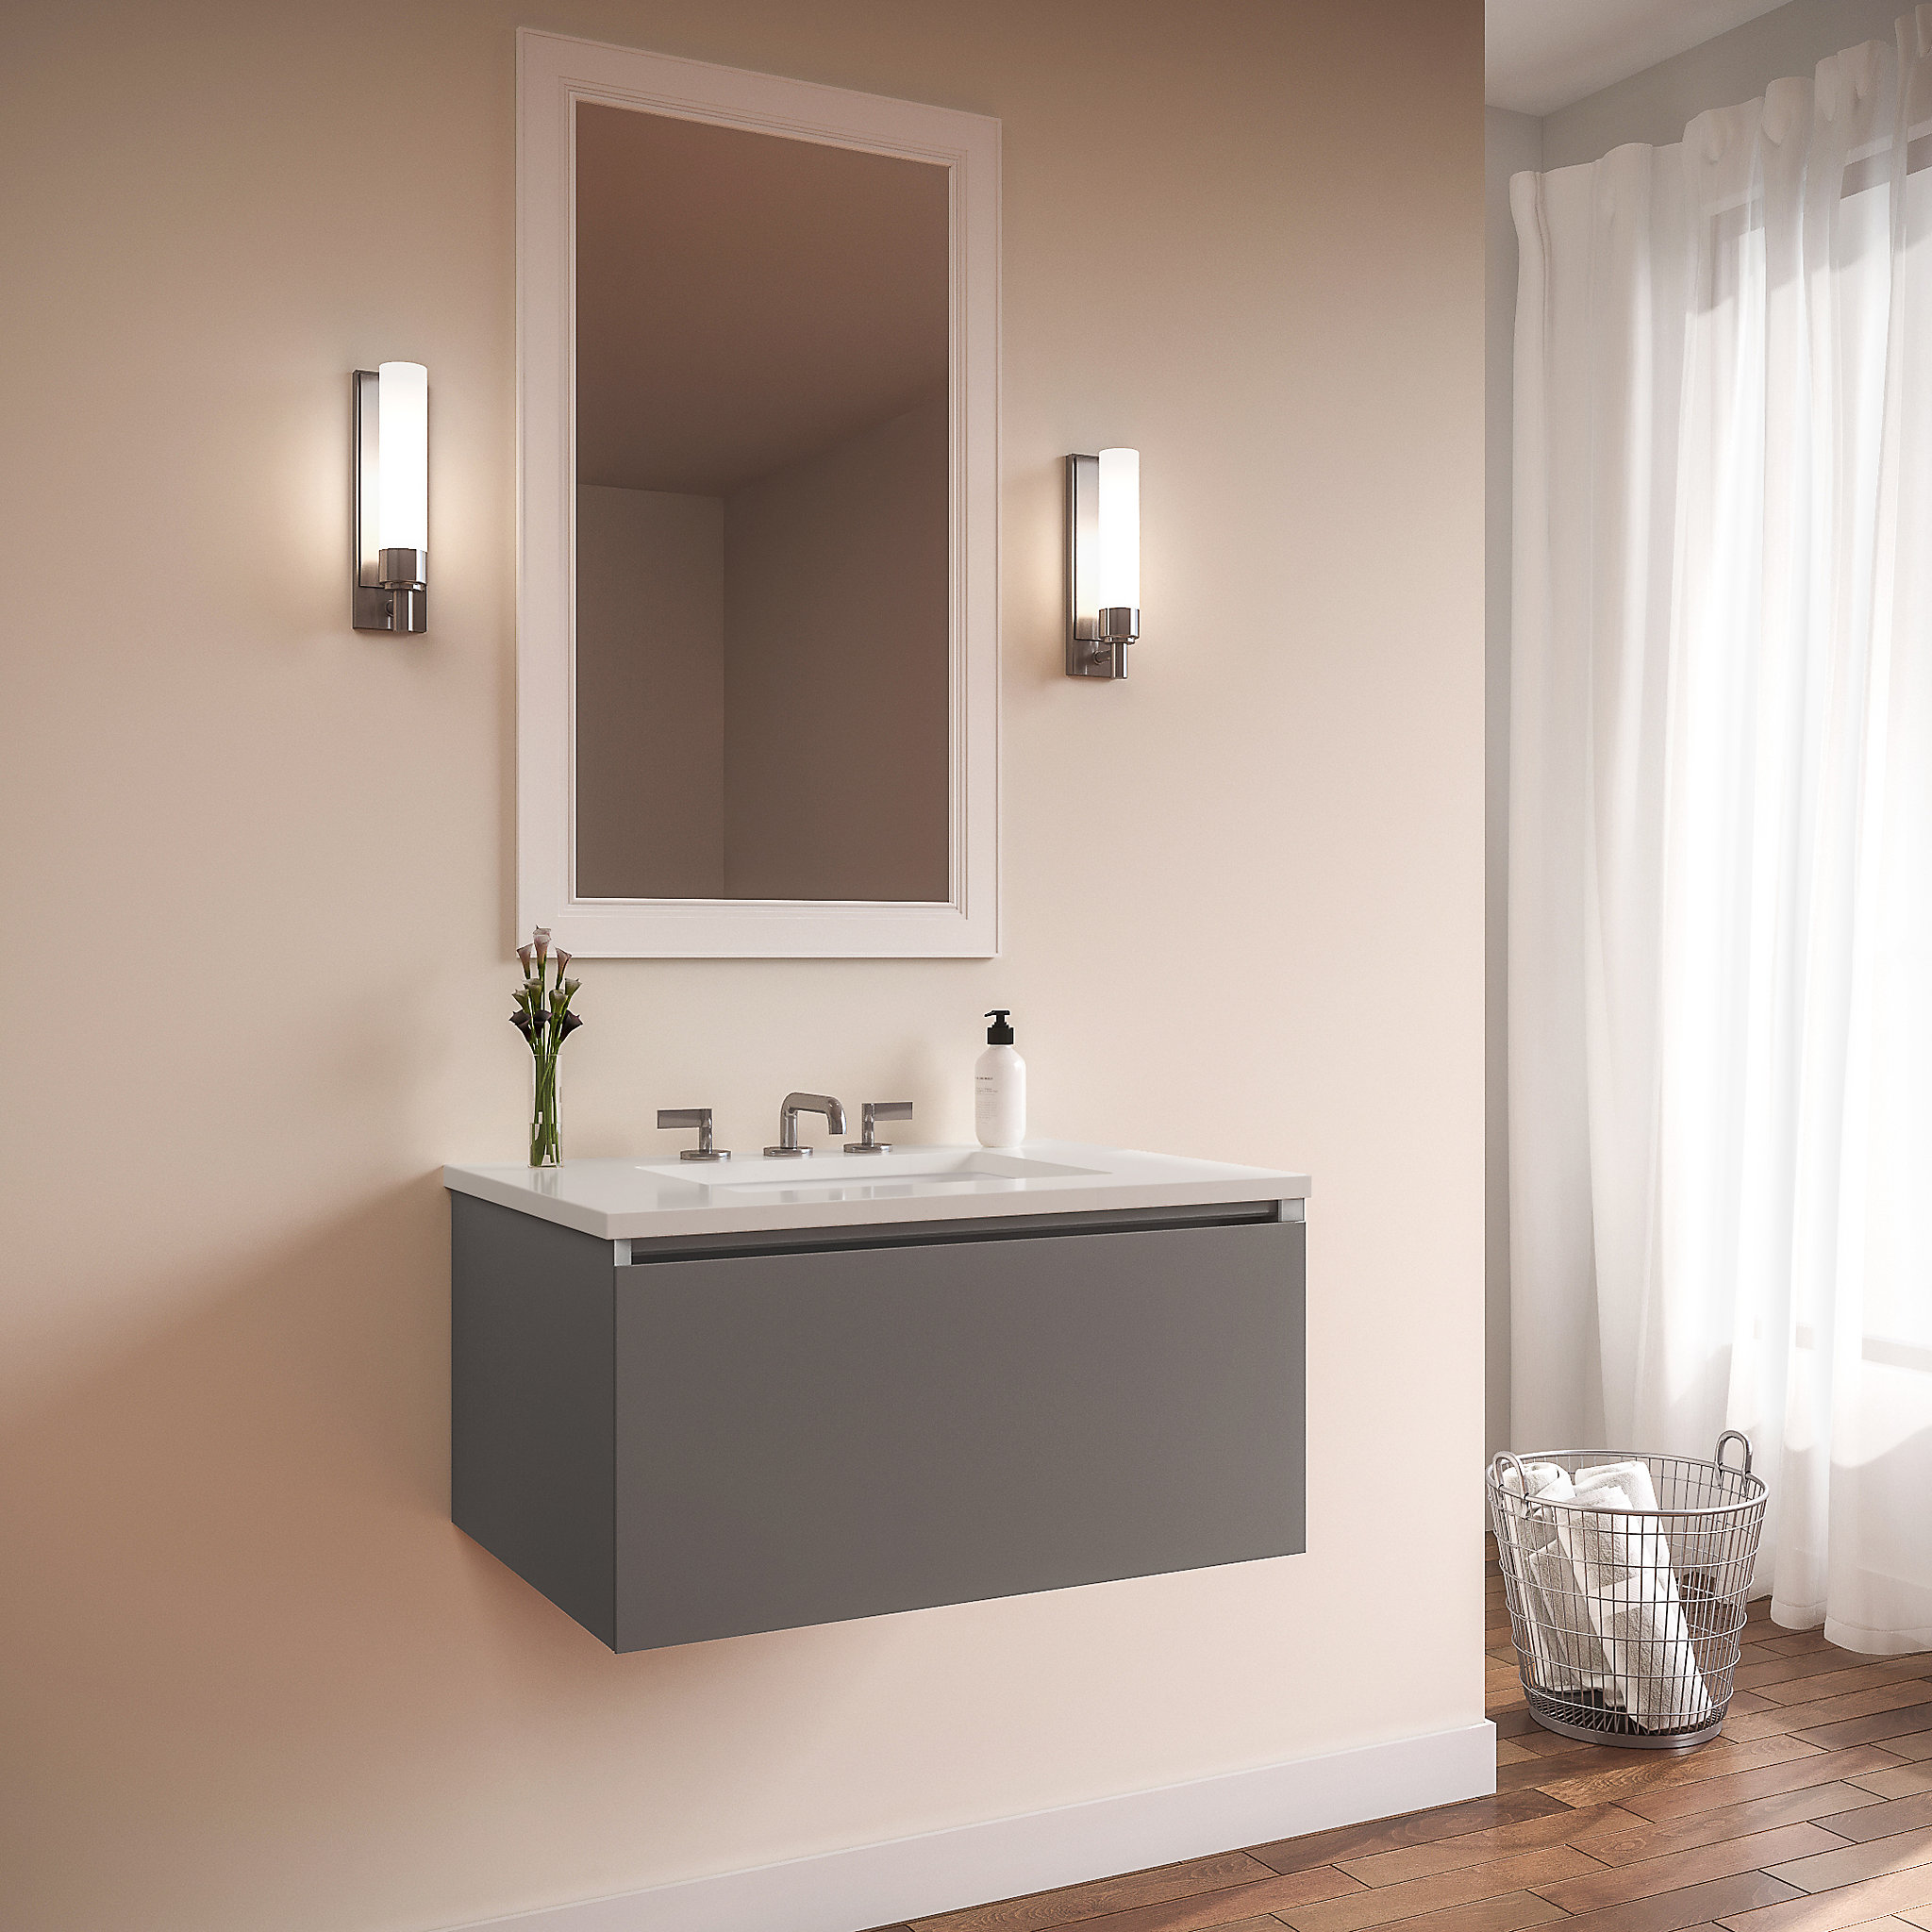 "Robern 30279200NB00001 Curated Cartesian Vanity, 30"" x 15"" x 21"", Single Drawer, Matte Gray Glass, Plumbing Drawer, Engineered S"